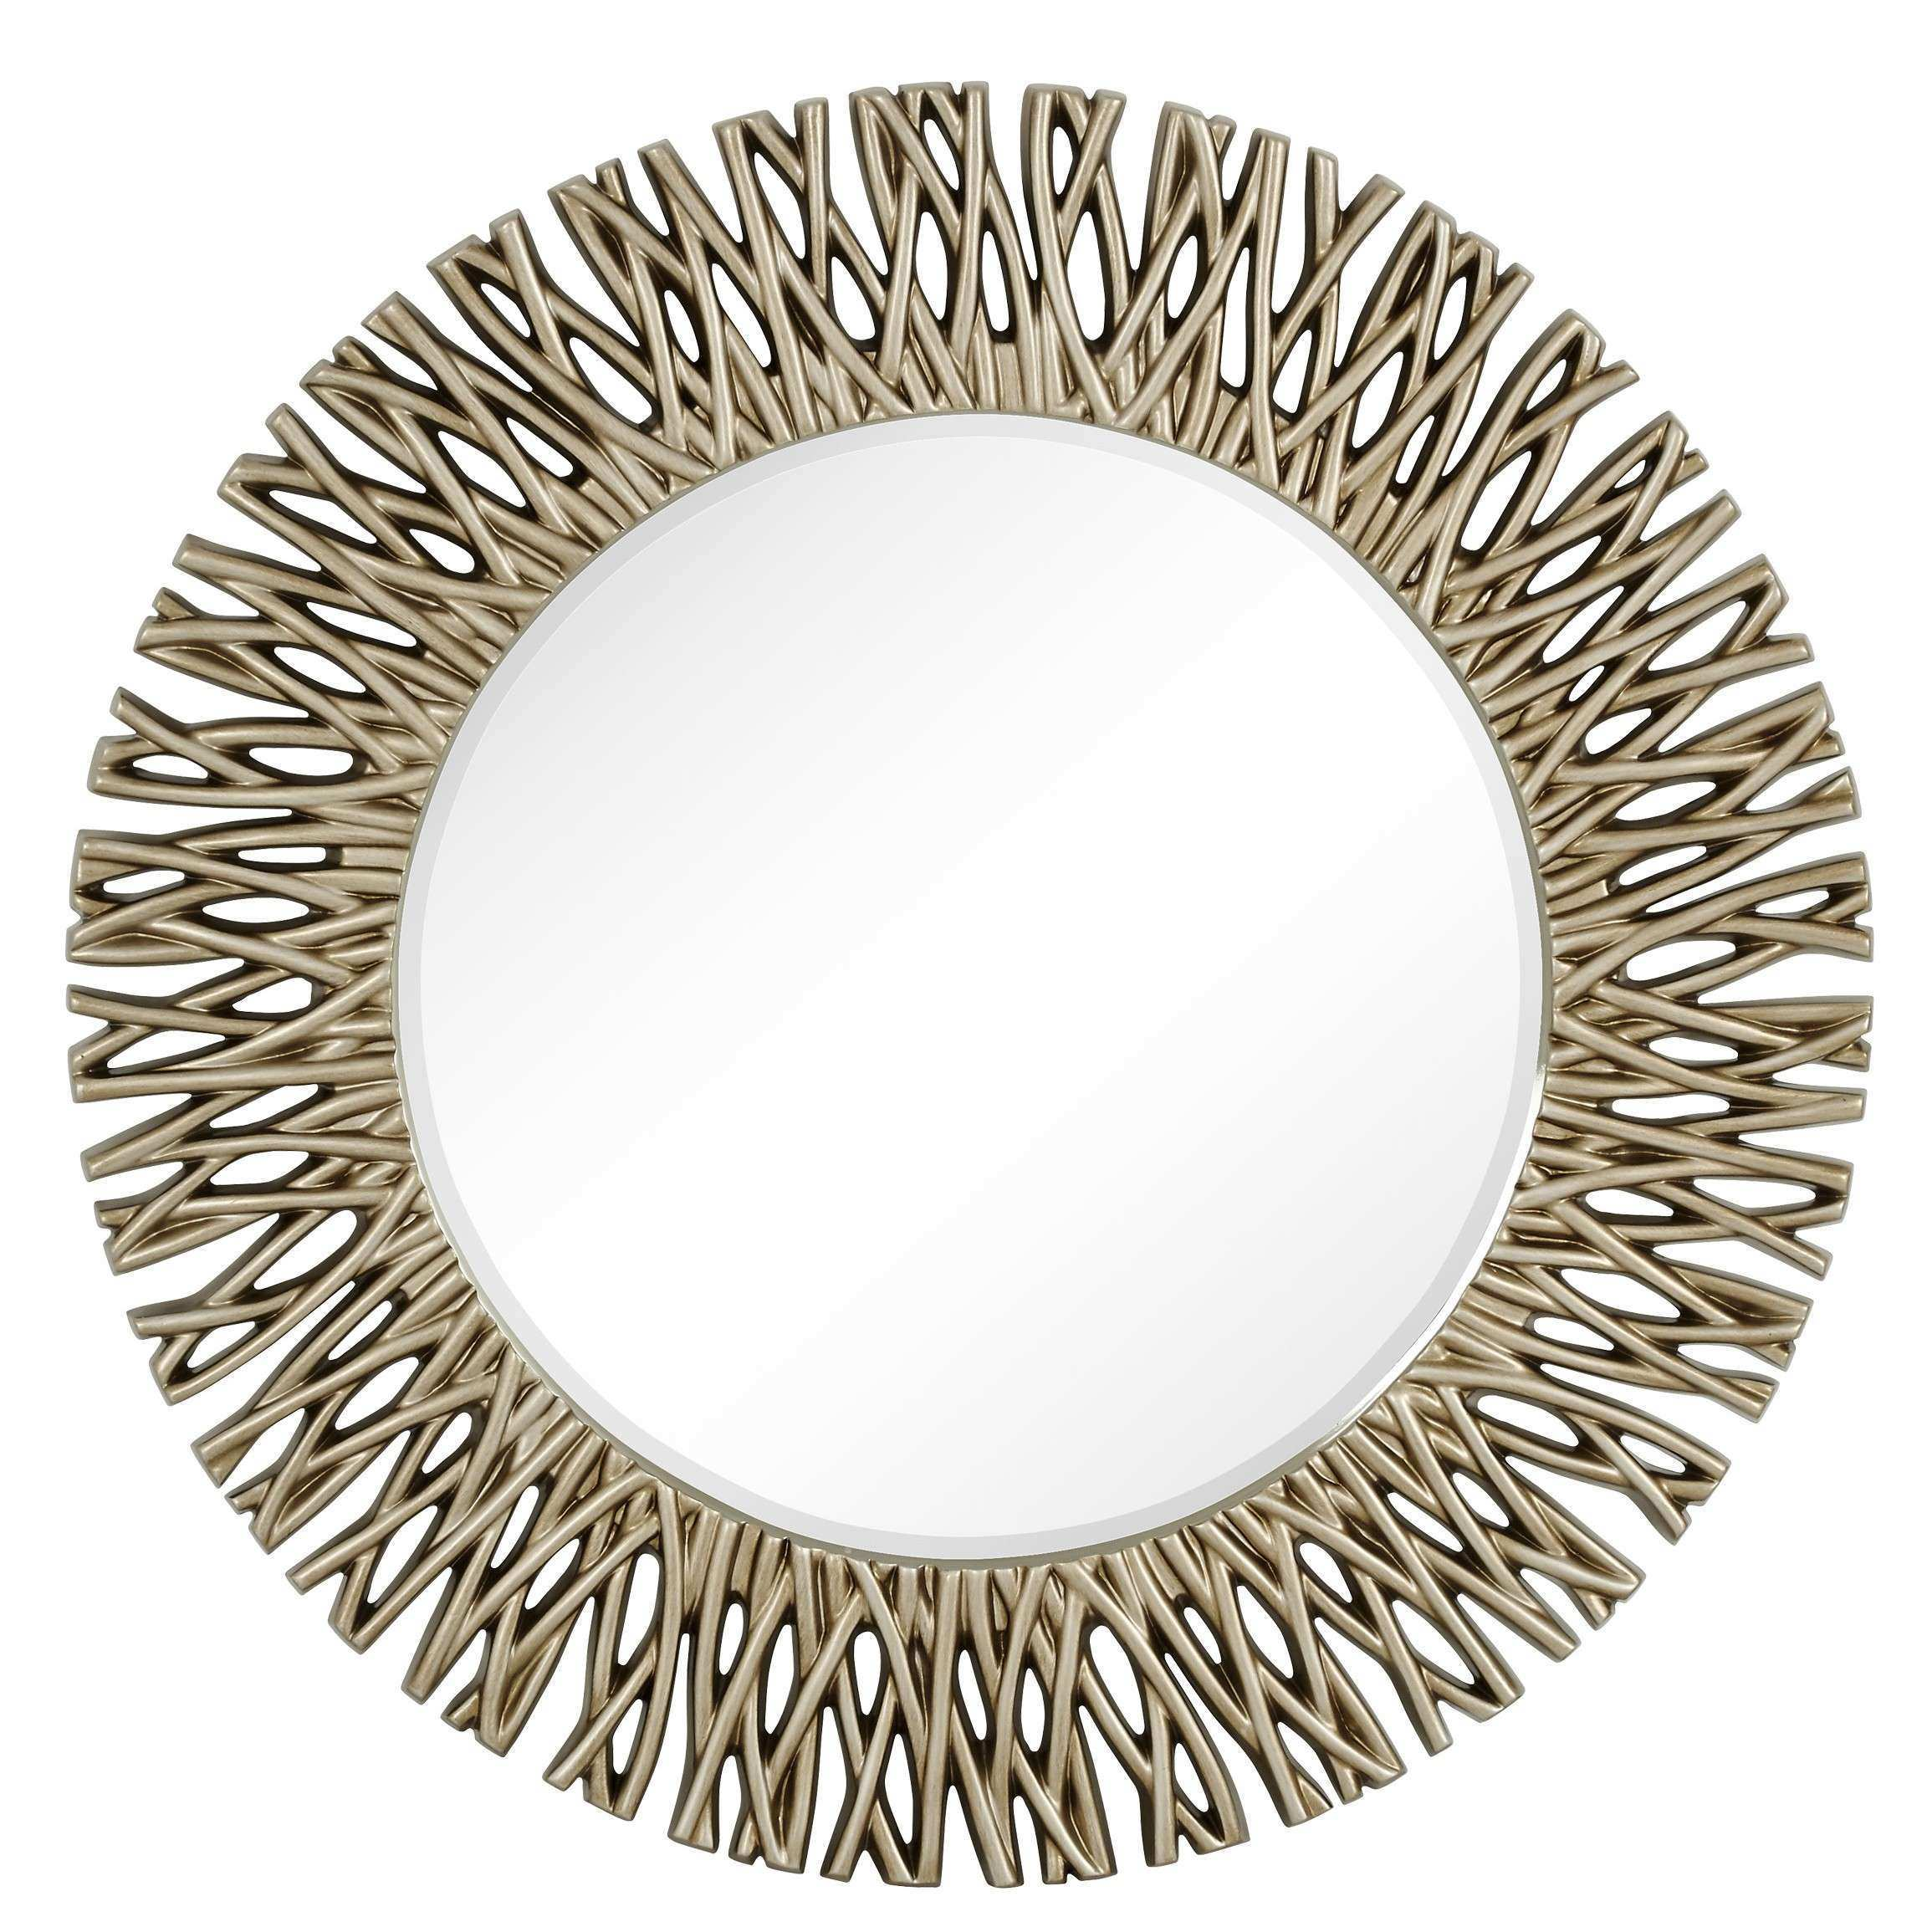 Round Antique Silver Decorative Beveled Glass Wall